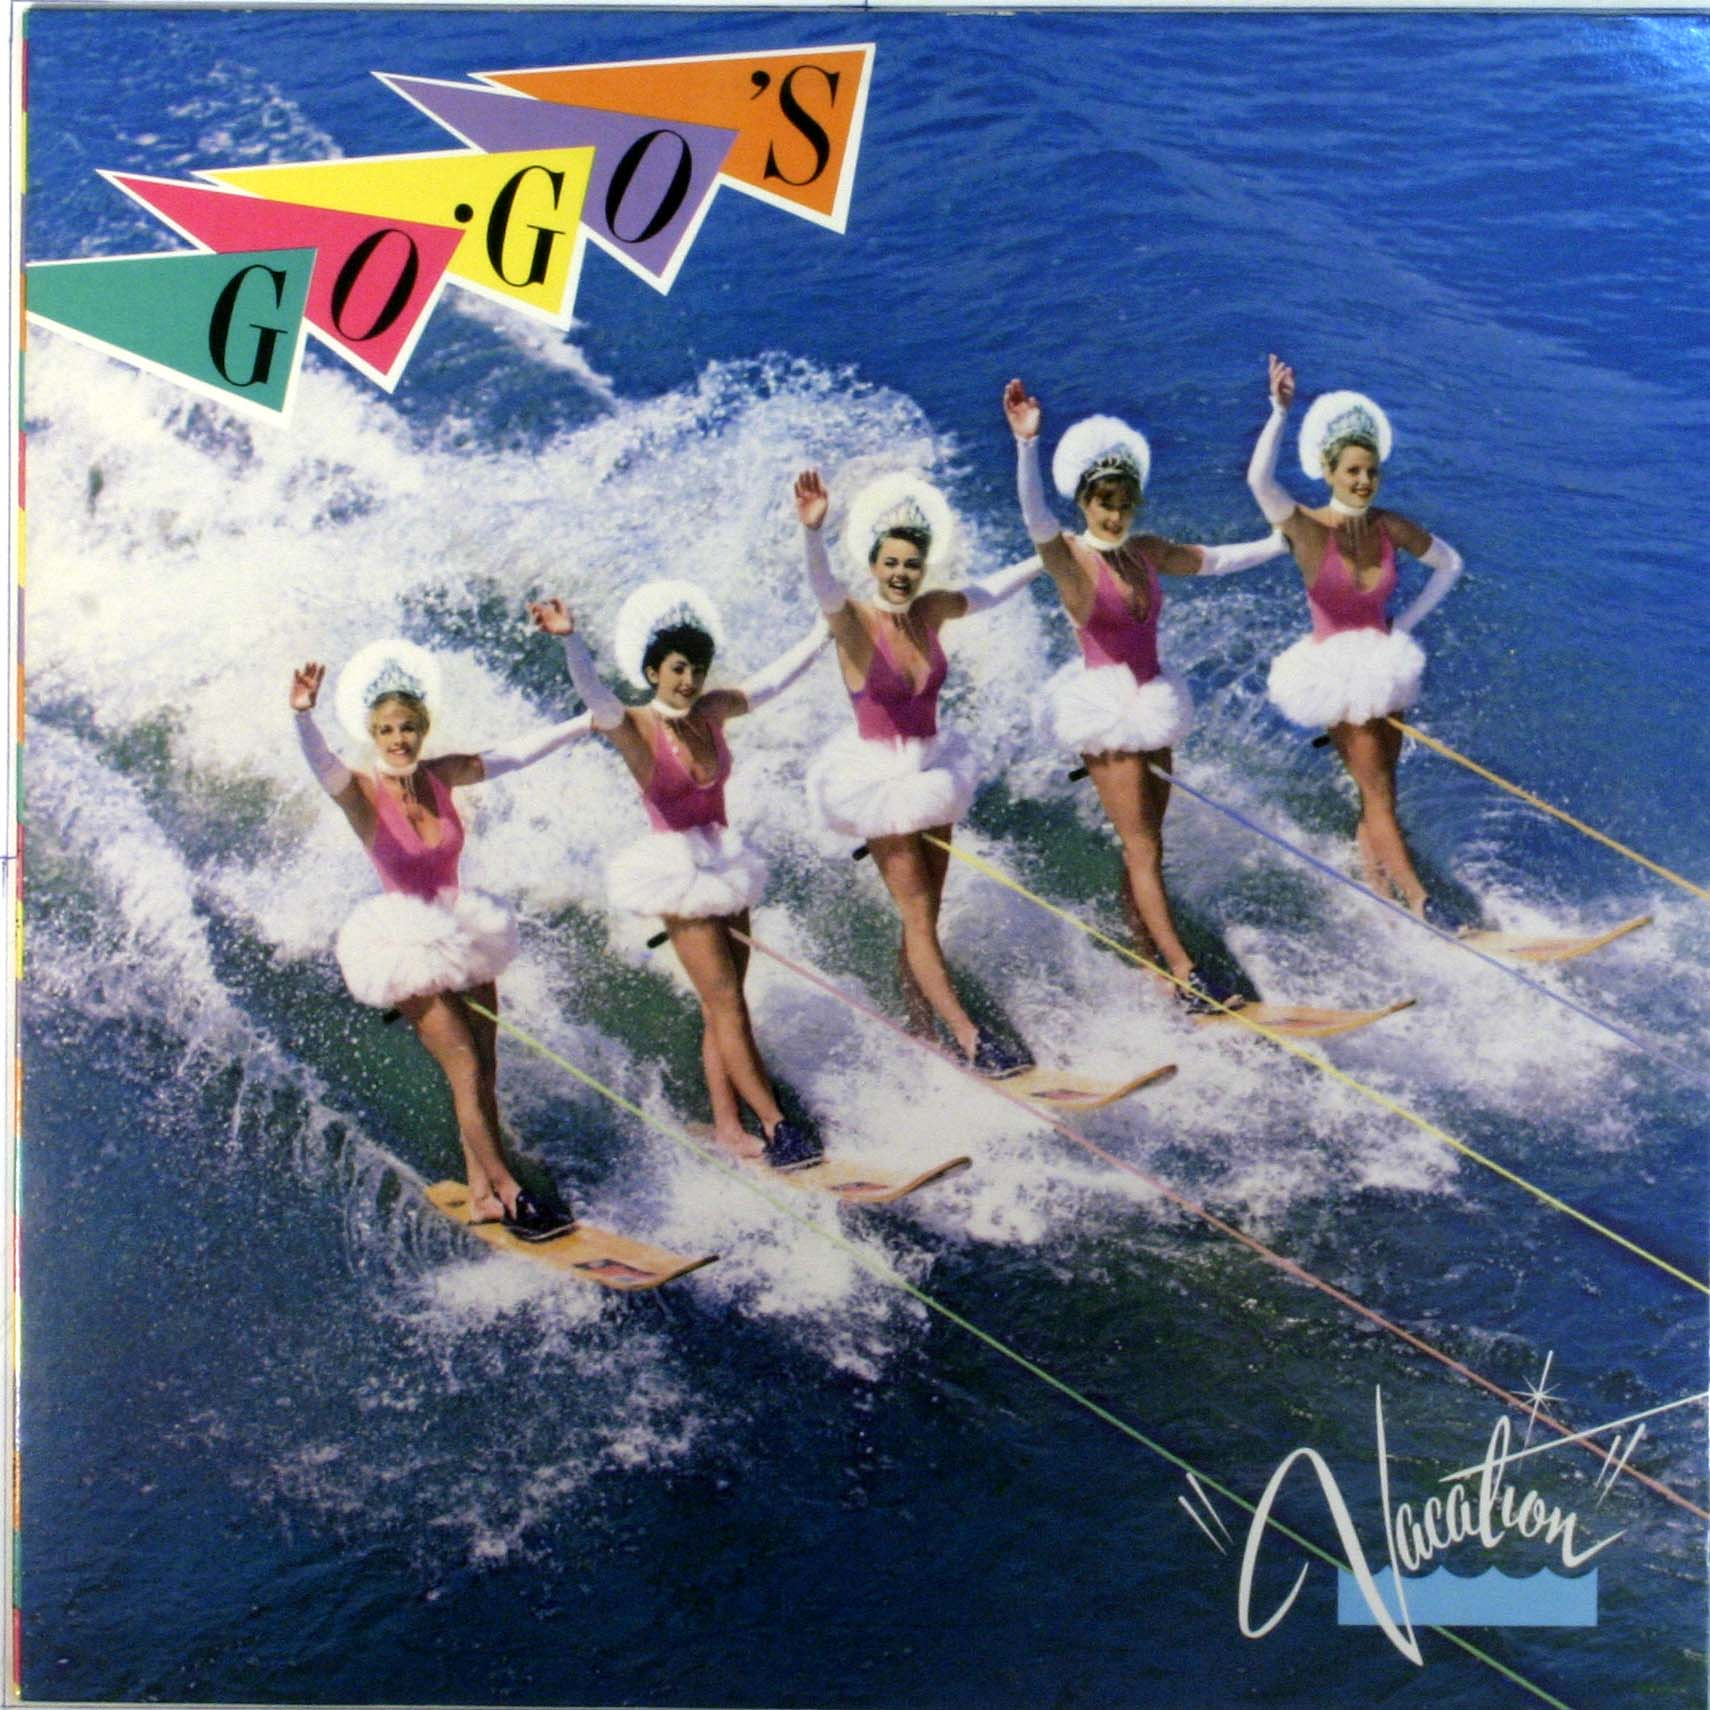 Go-Go's - Vacation Vinyl